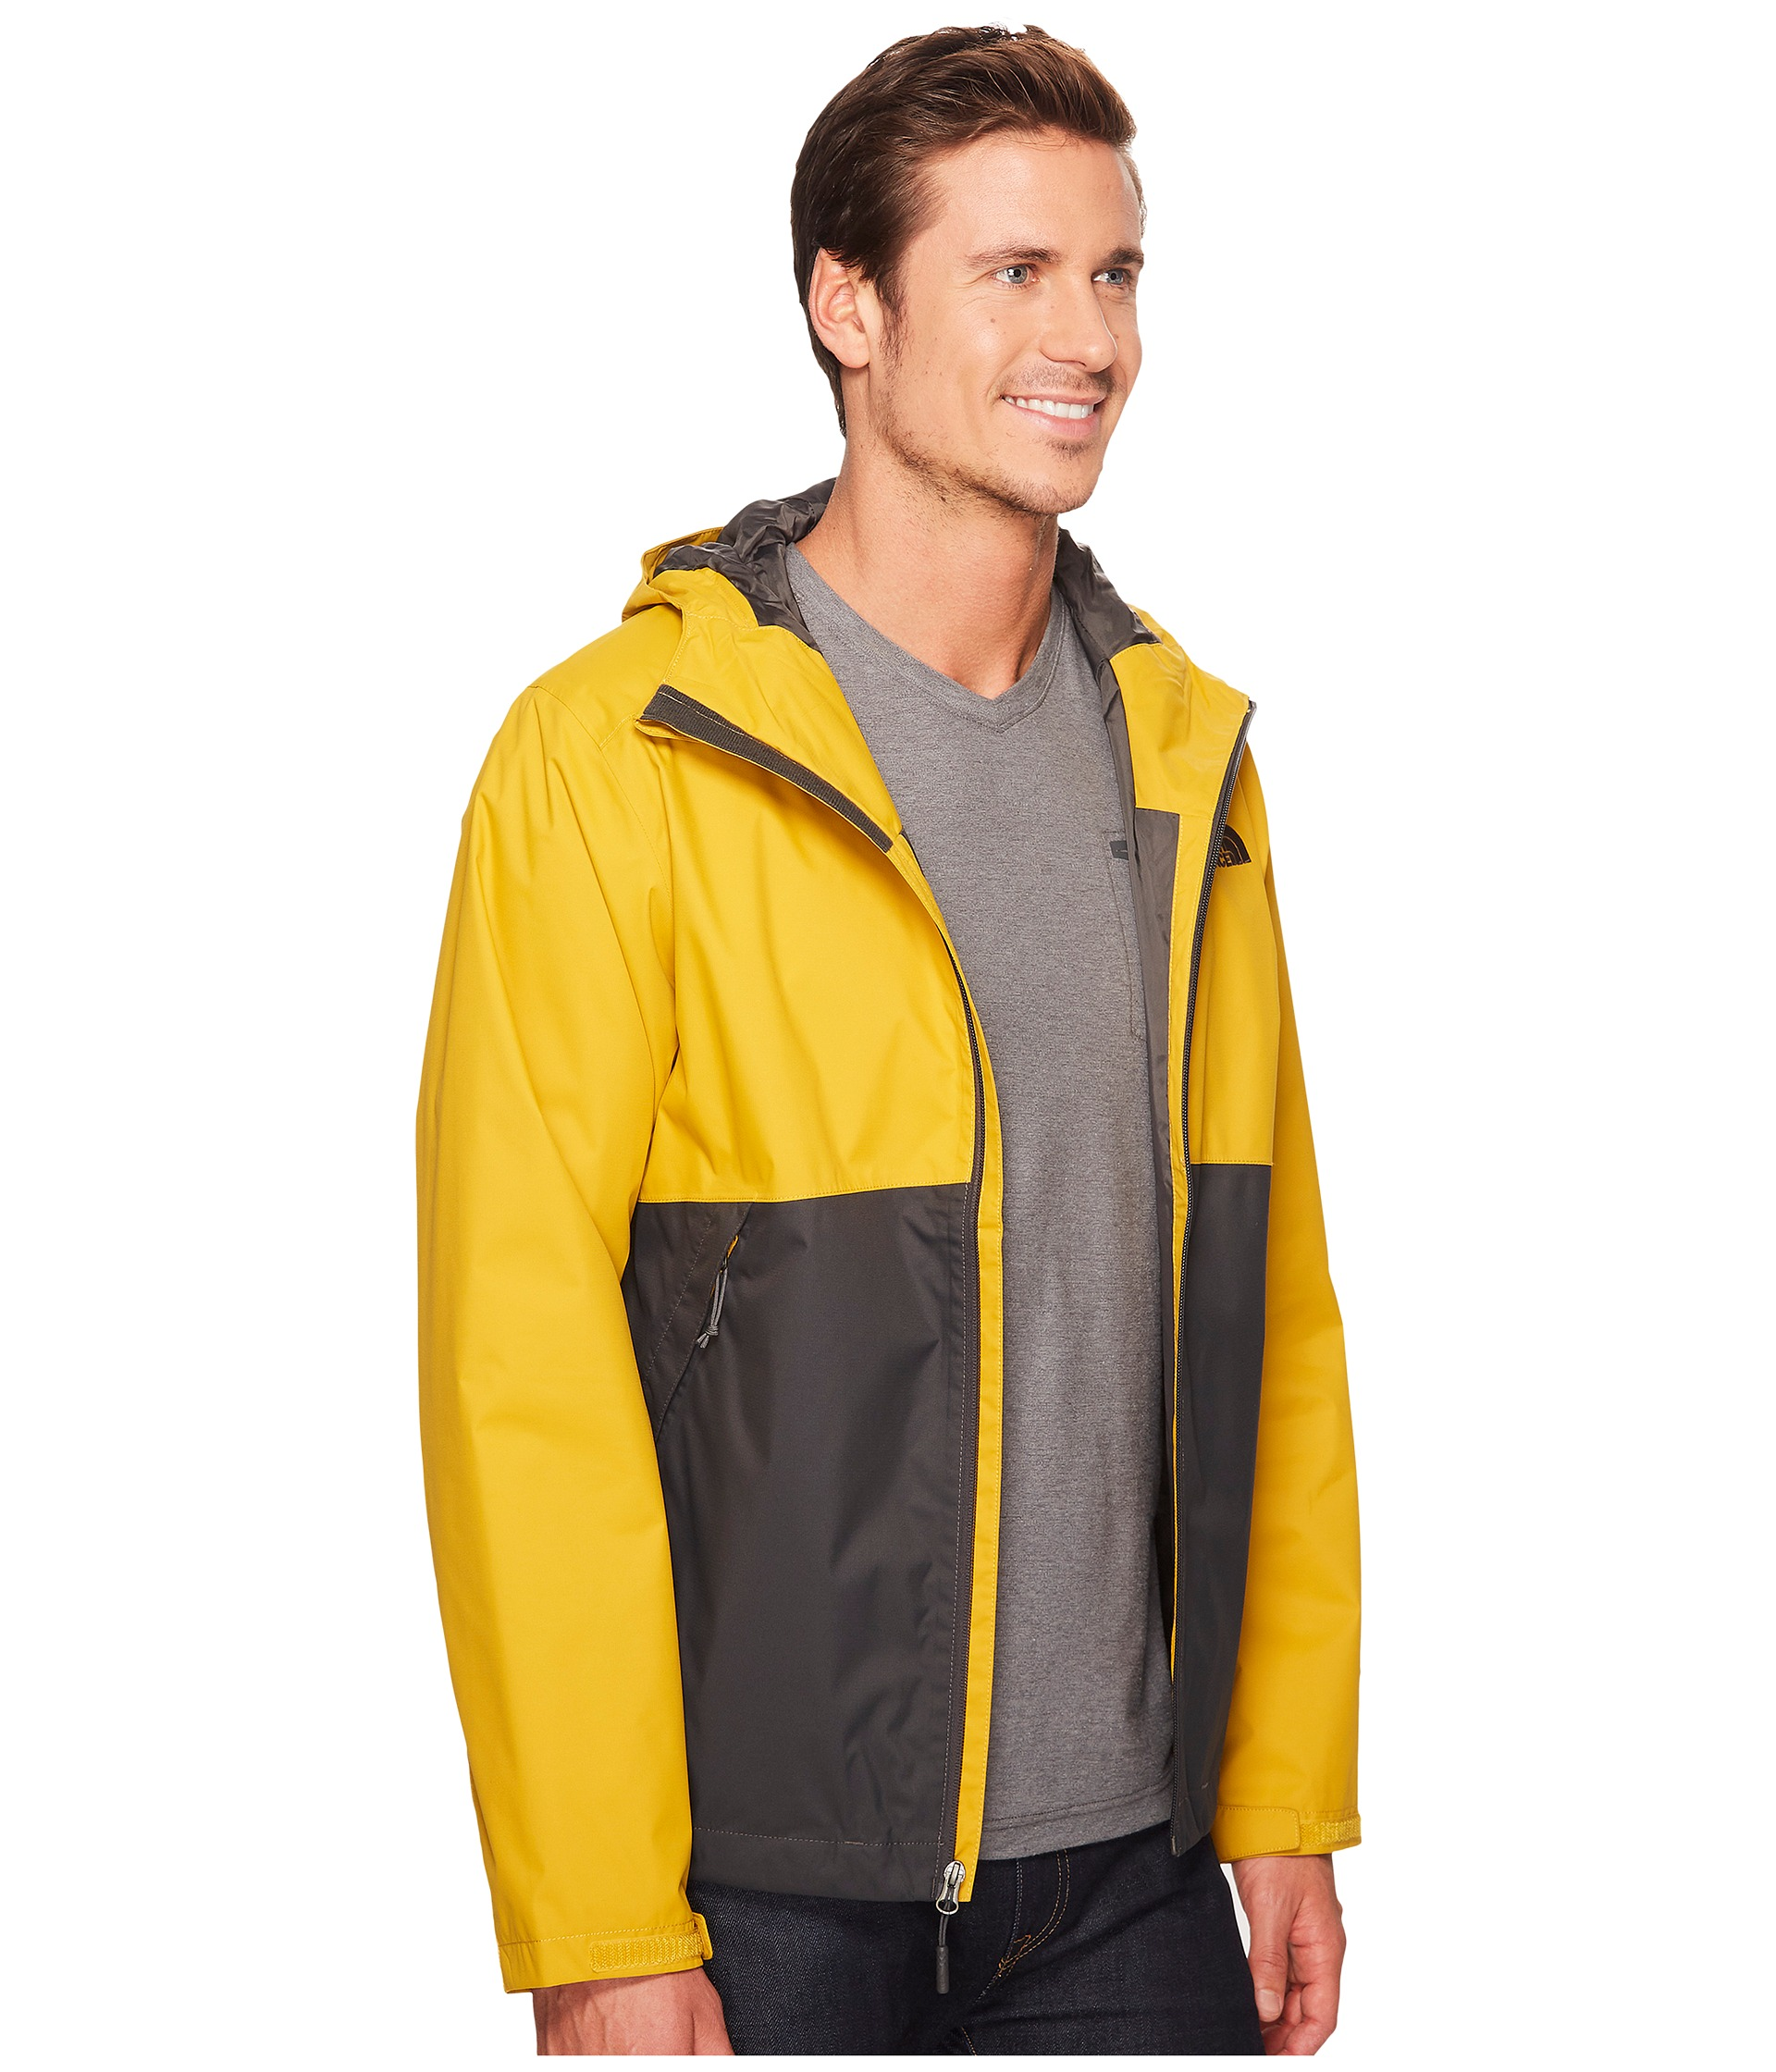 millerton women Millerton jacket by the north face at zapposcom read the north face millerton jacket product reviews, or select the size, width, and color of your choice.